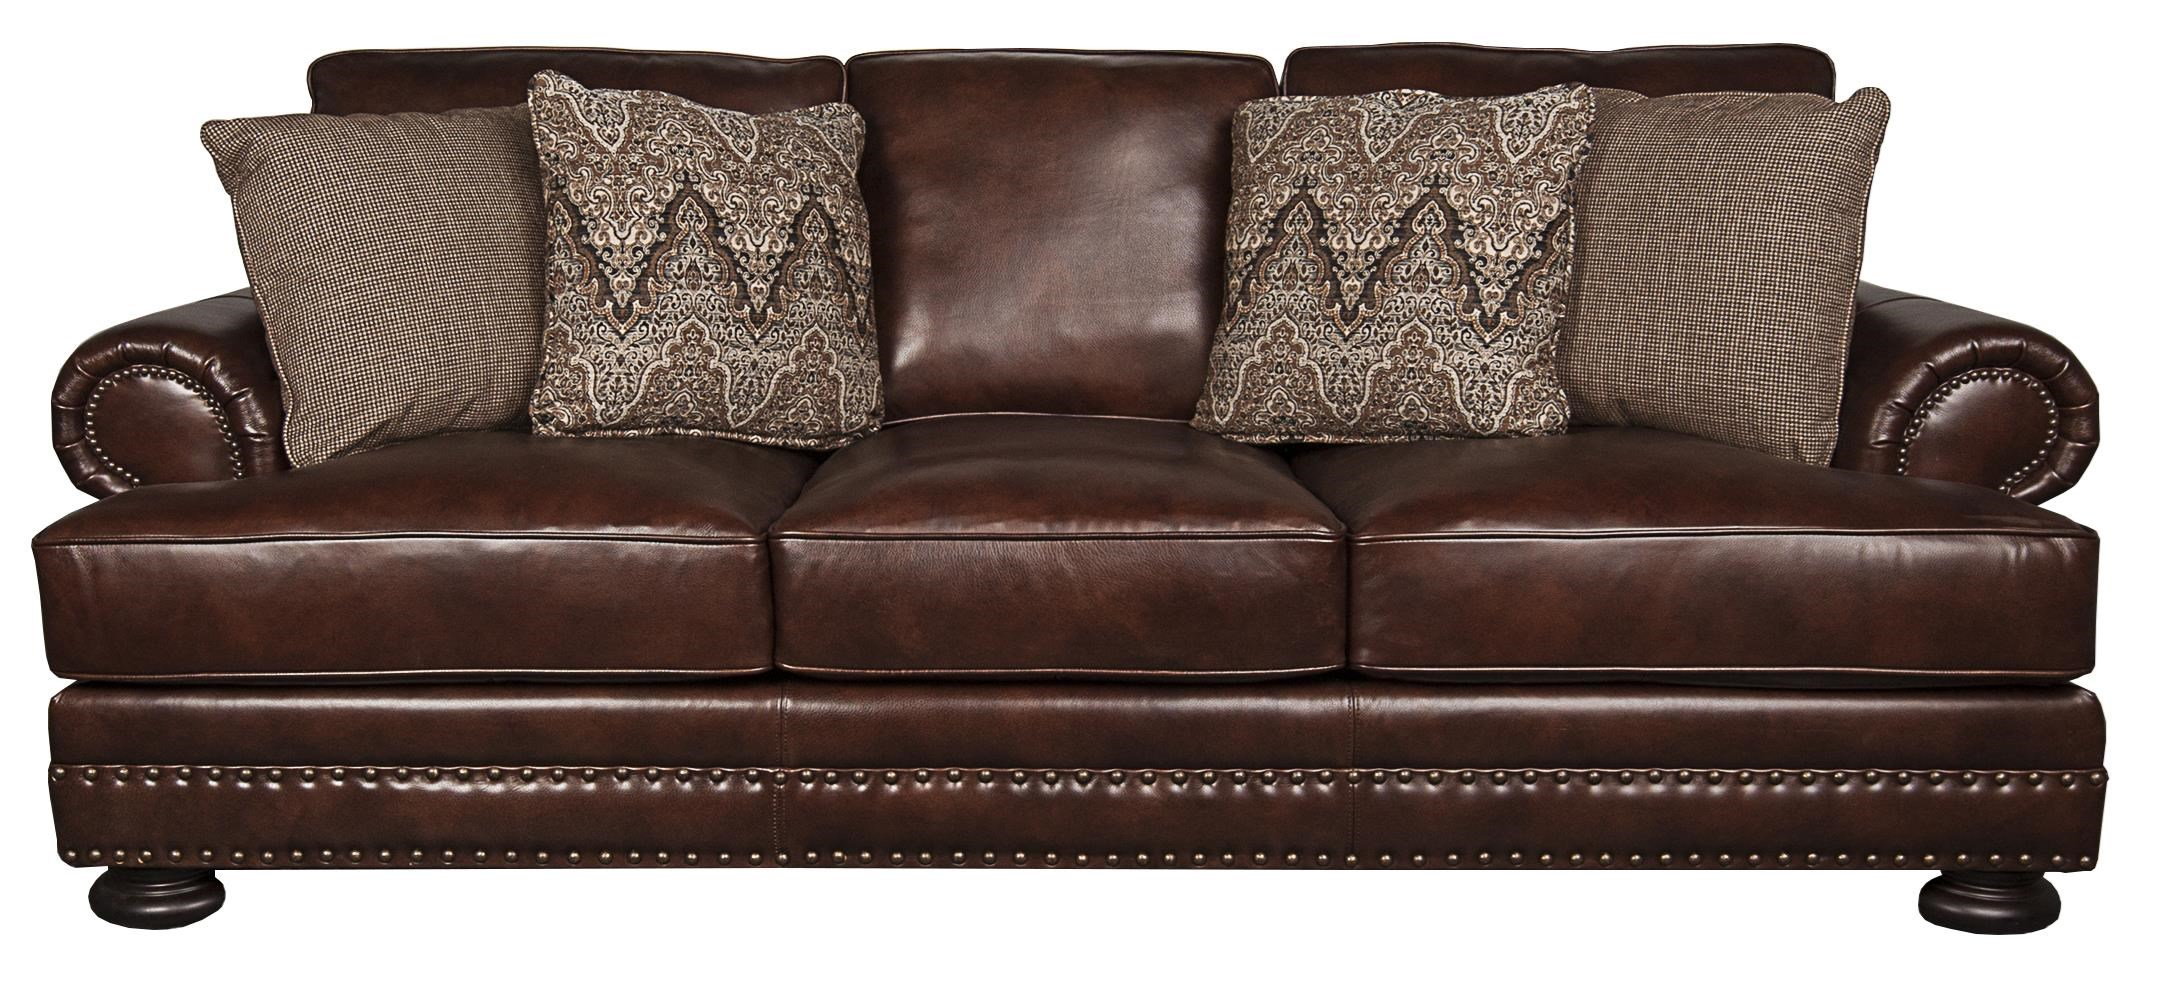 Foster Foster 100% Leather Sofa by Bernhardt at Morris Home